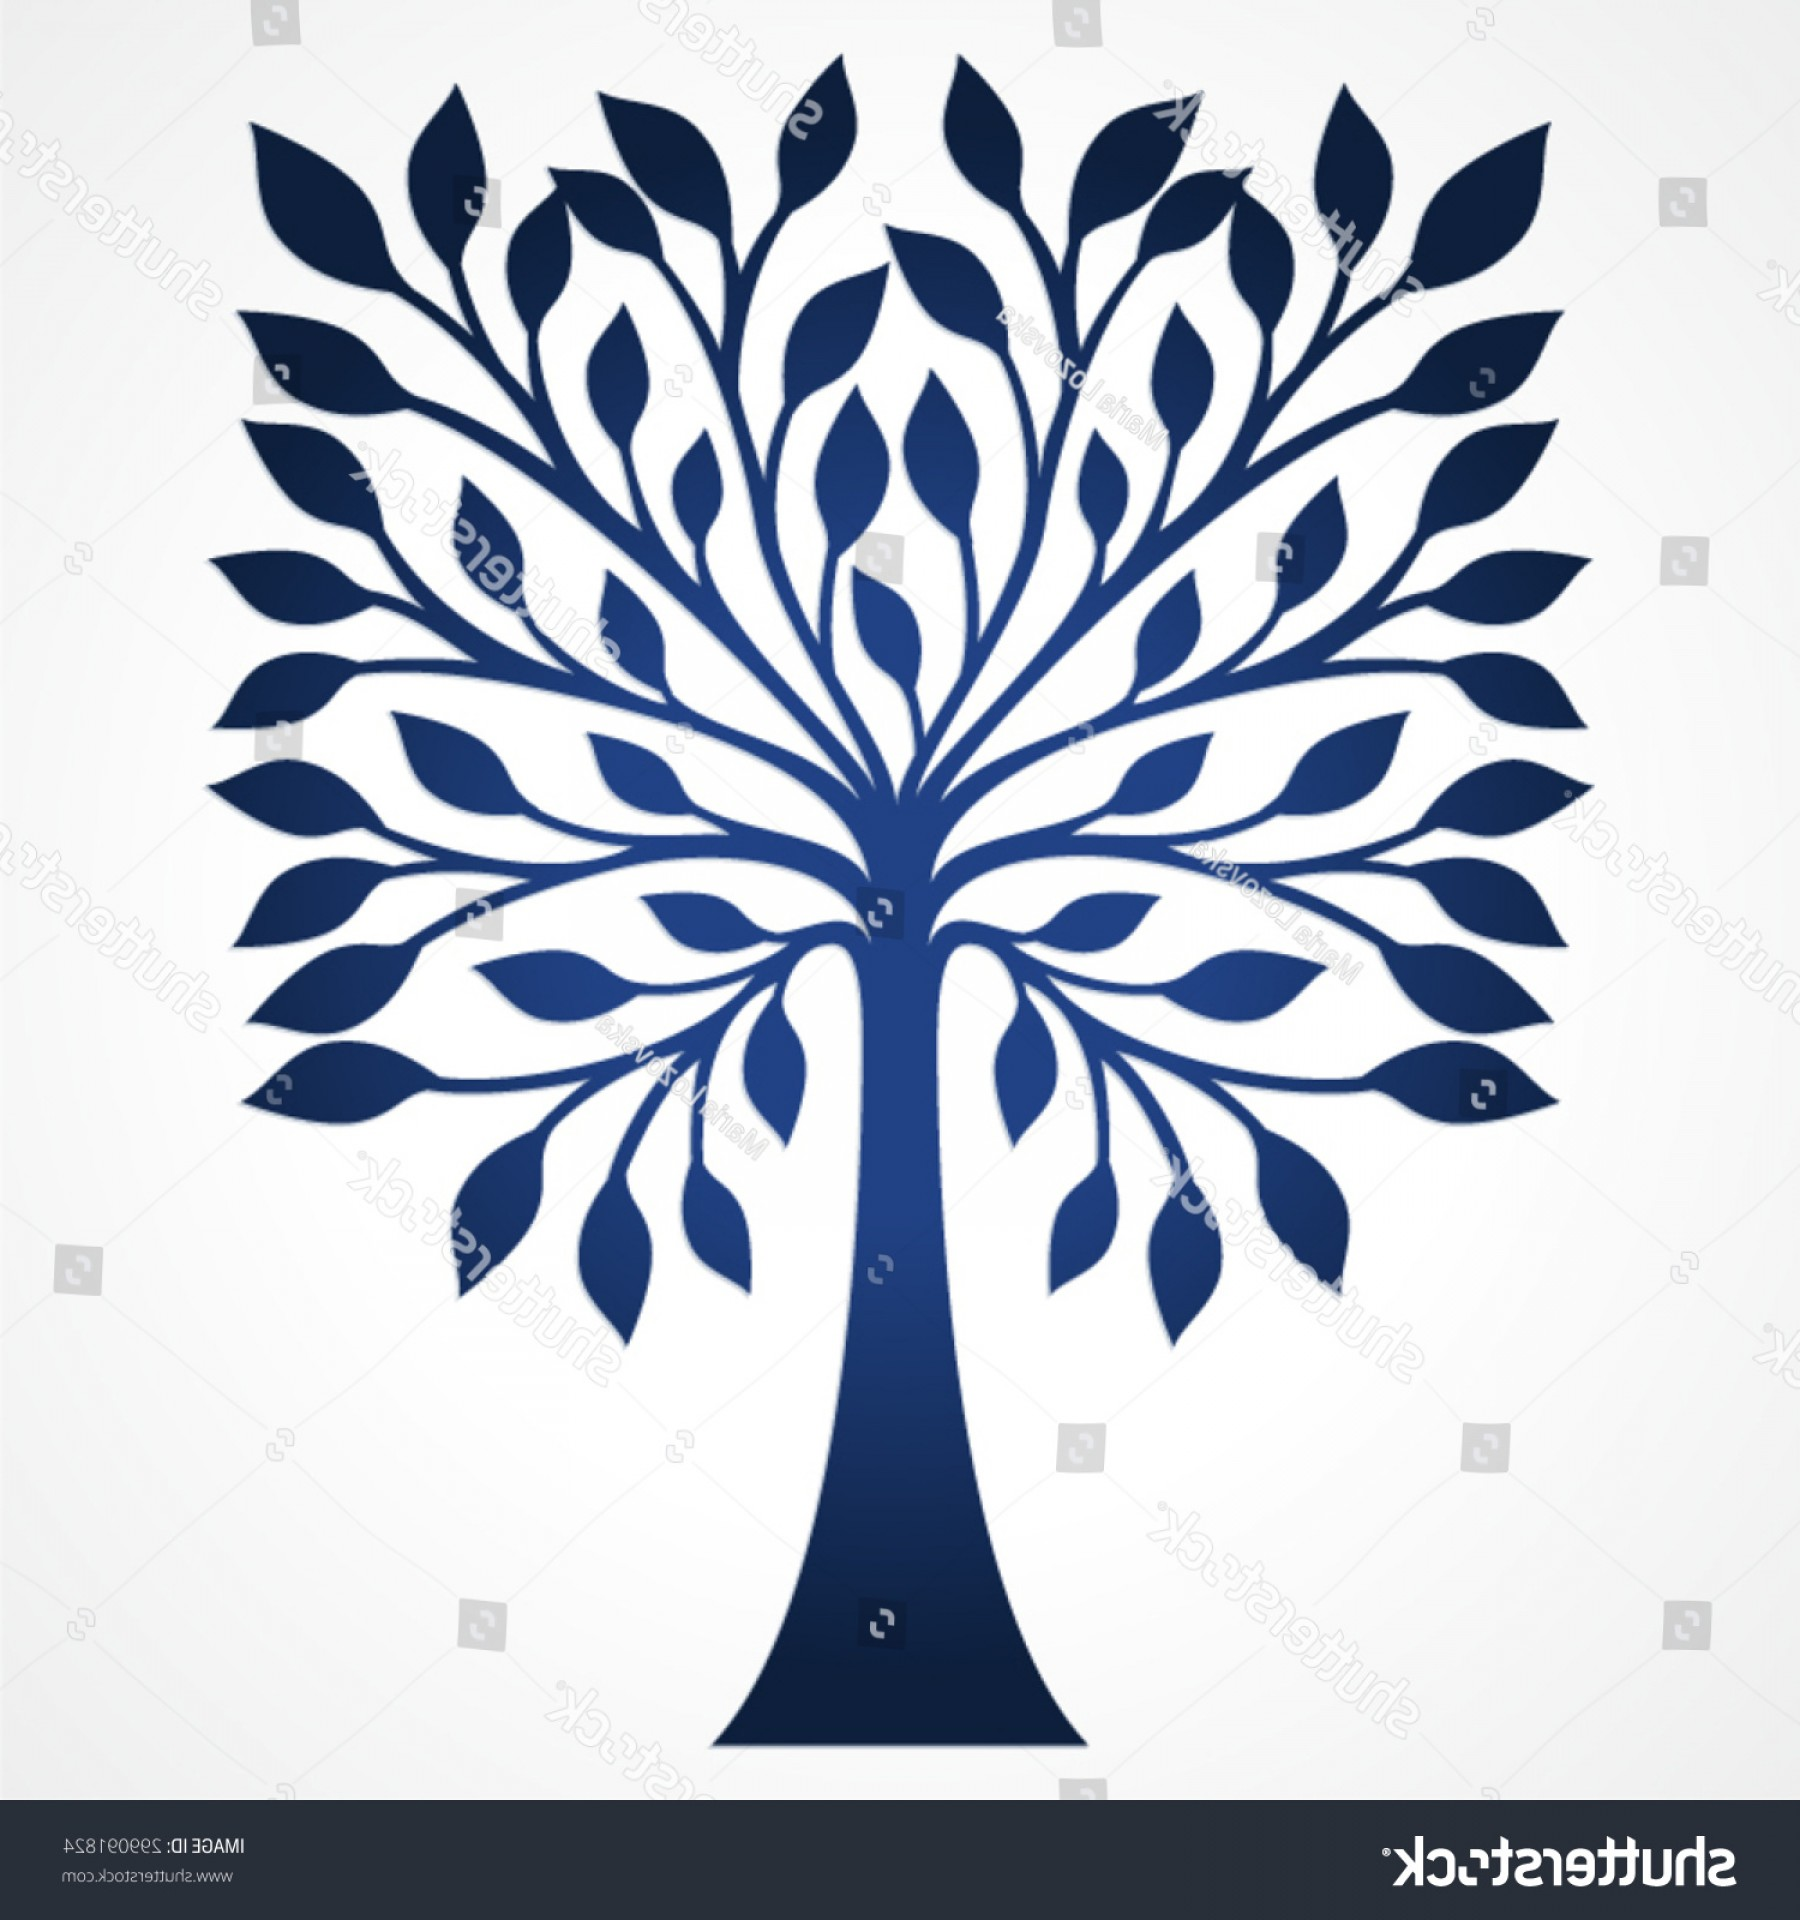 Wood Cutting Vector: Decorative Simple Tree May Be Used